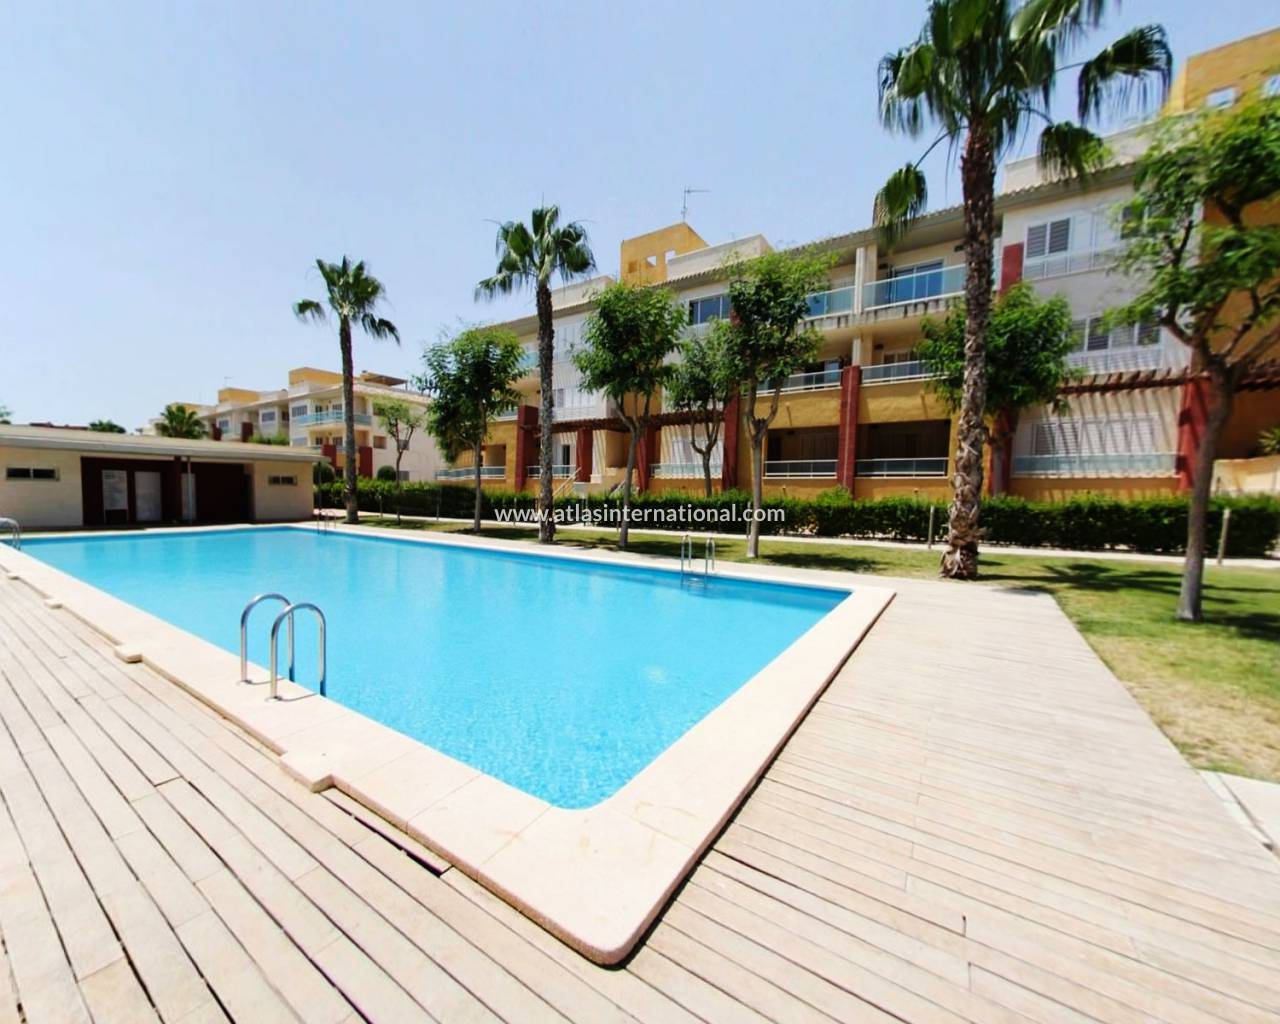 Appartement - Nouvelle construction - Alhama - Alhama